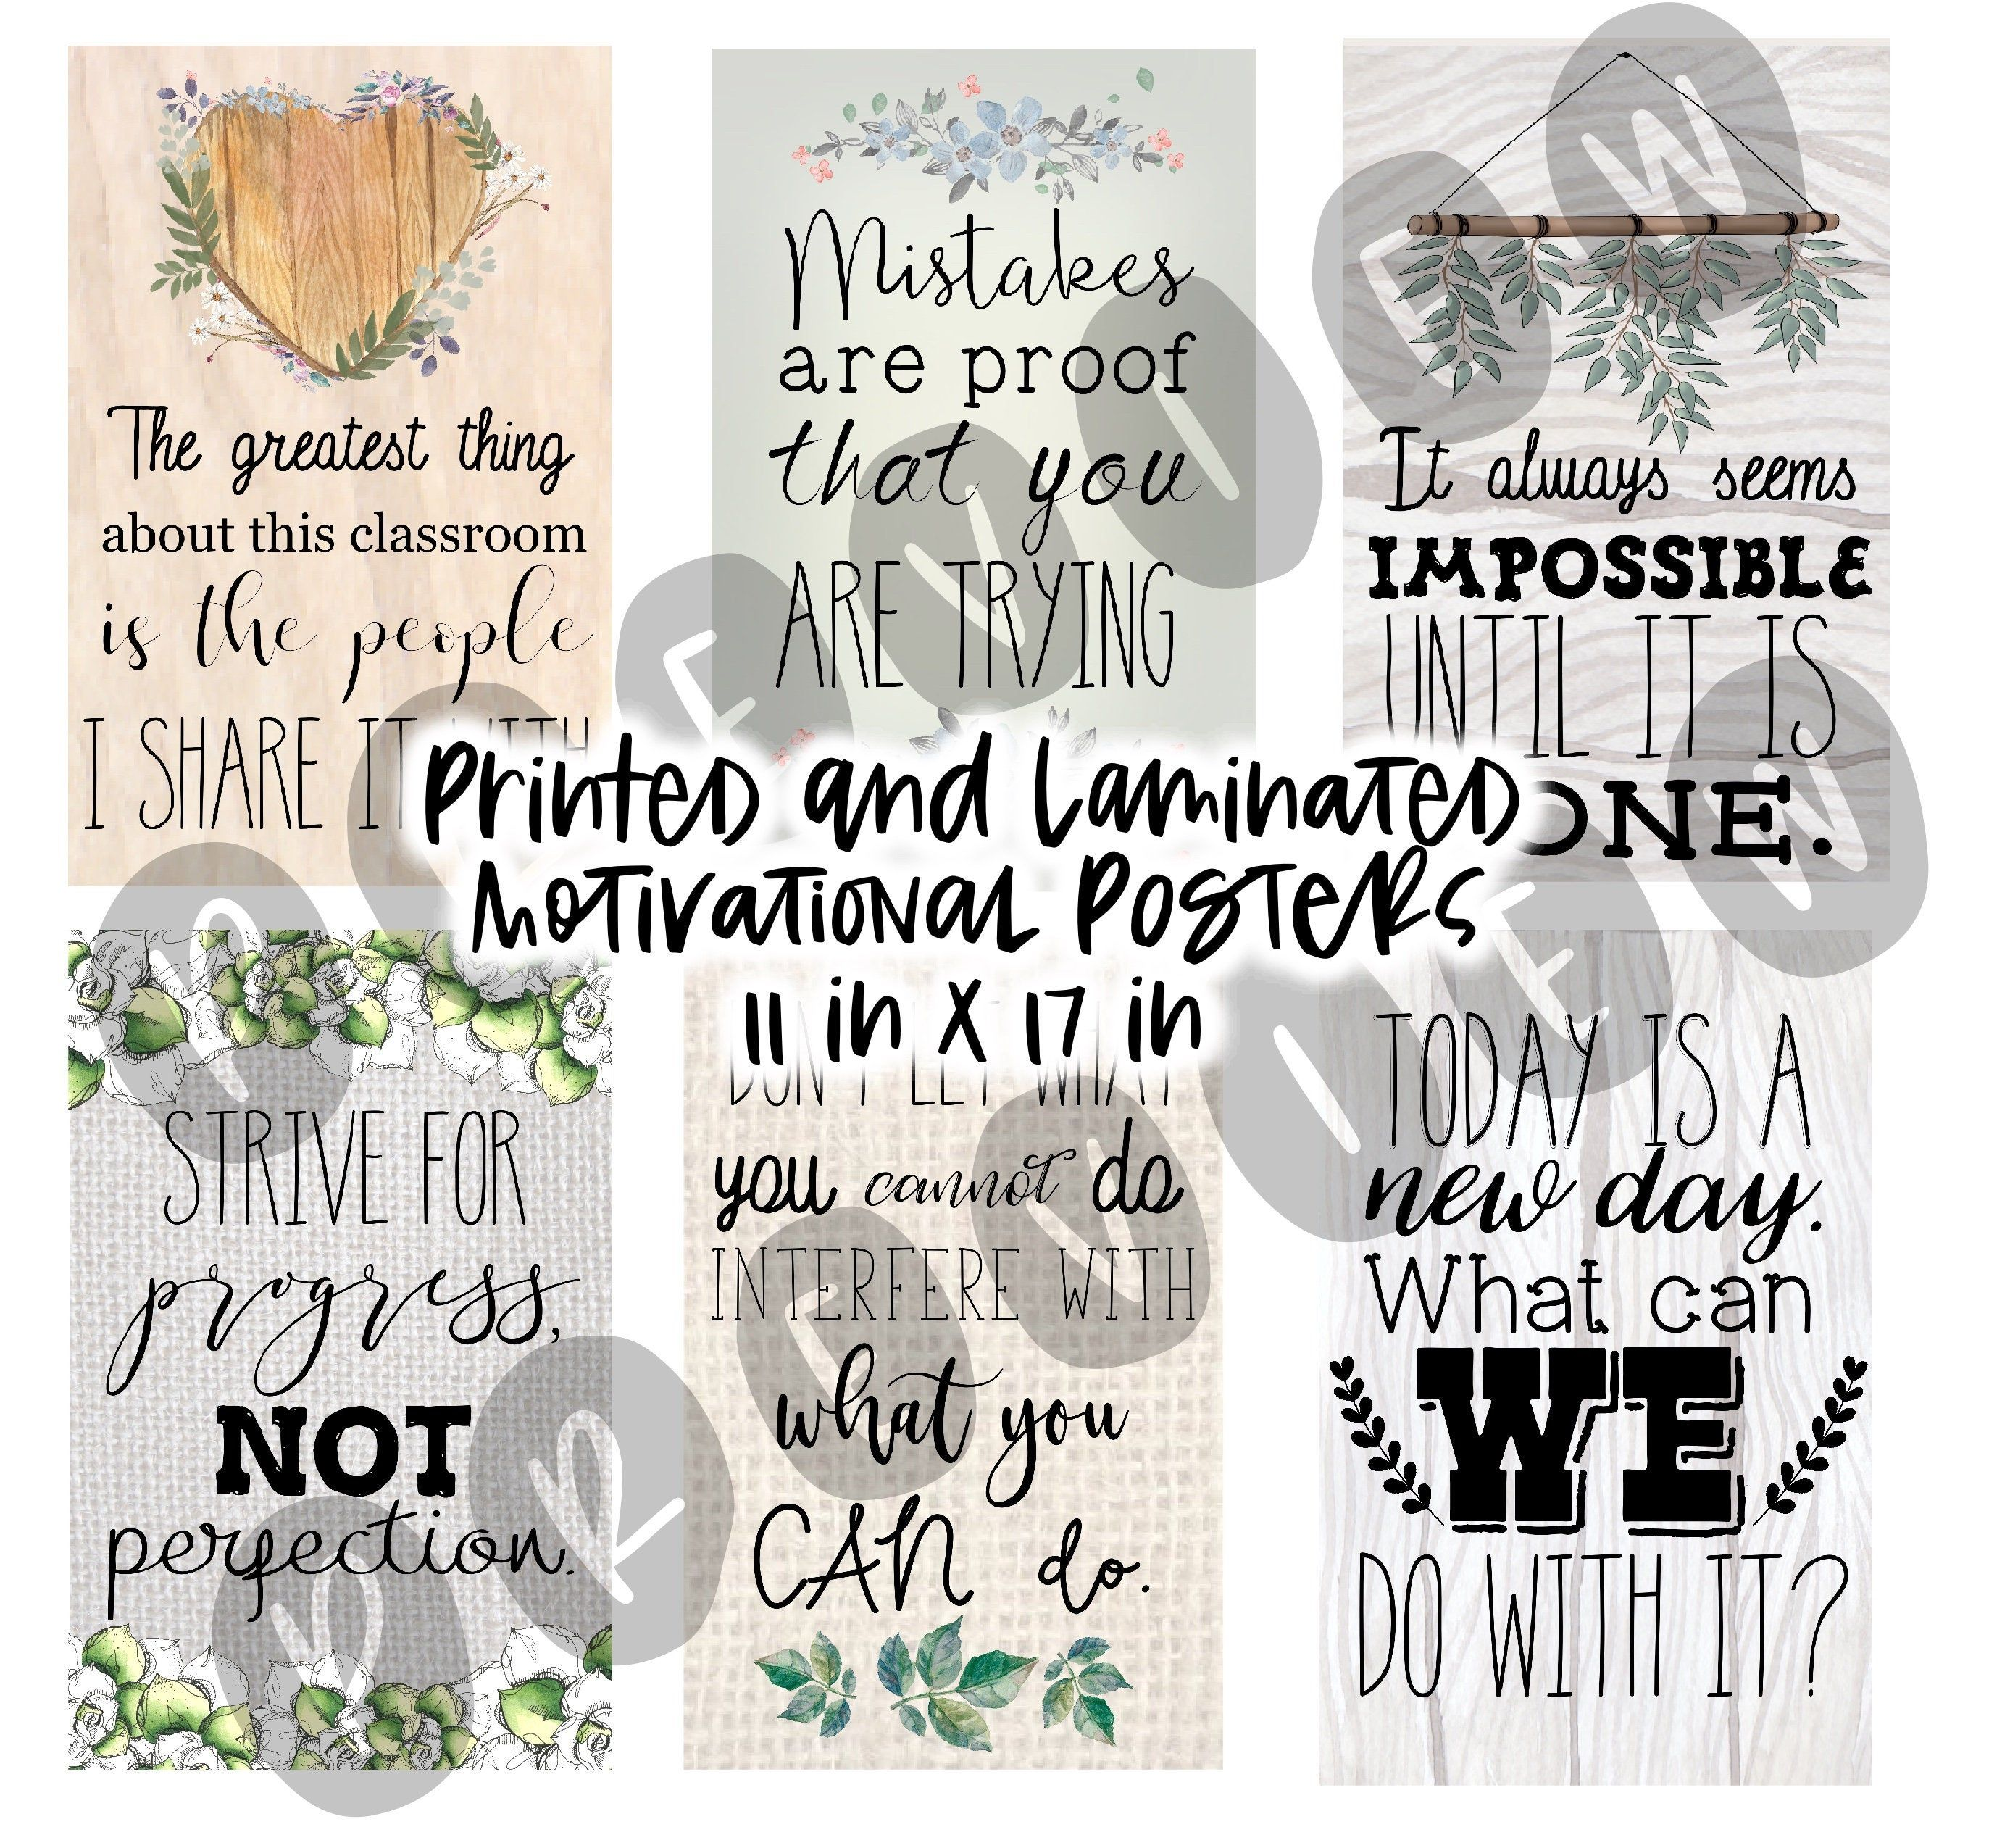 Farmhouse Rustic Classroom Theme Motivational Posters Anchor Charts 11 X 17 Printed And Laminated In 2020 Classroom Themes Math Poster Anchor Charts